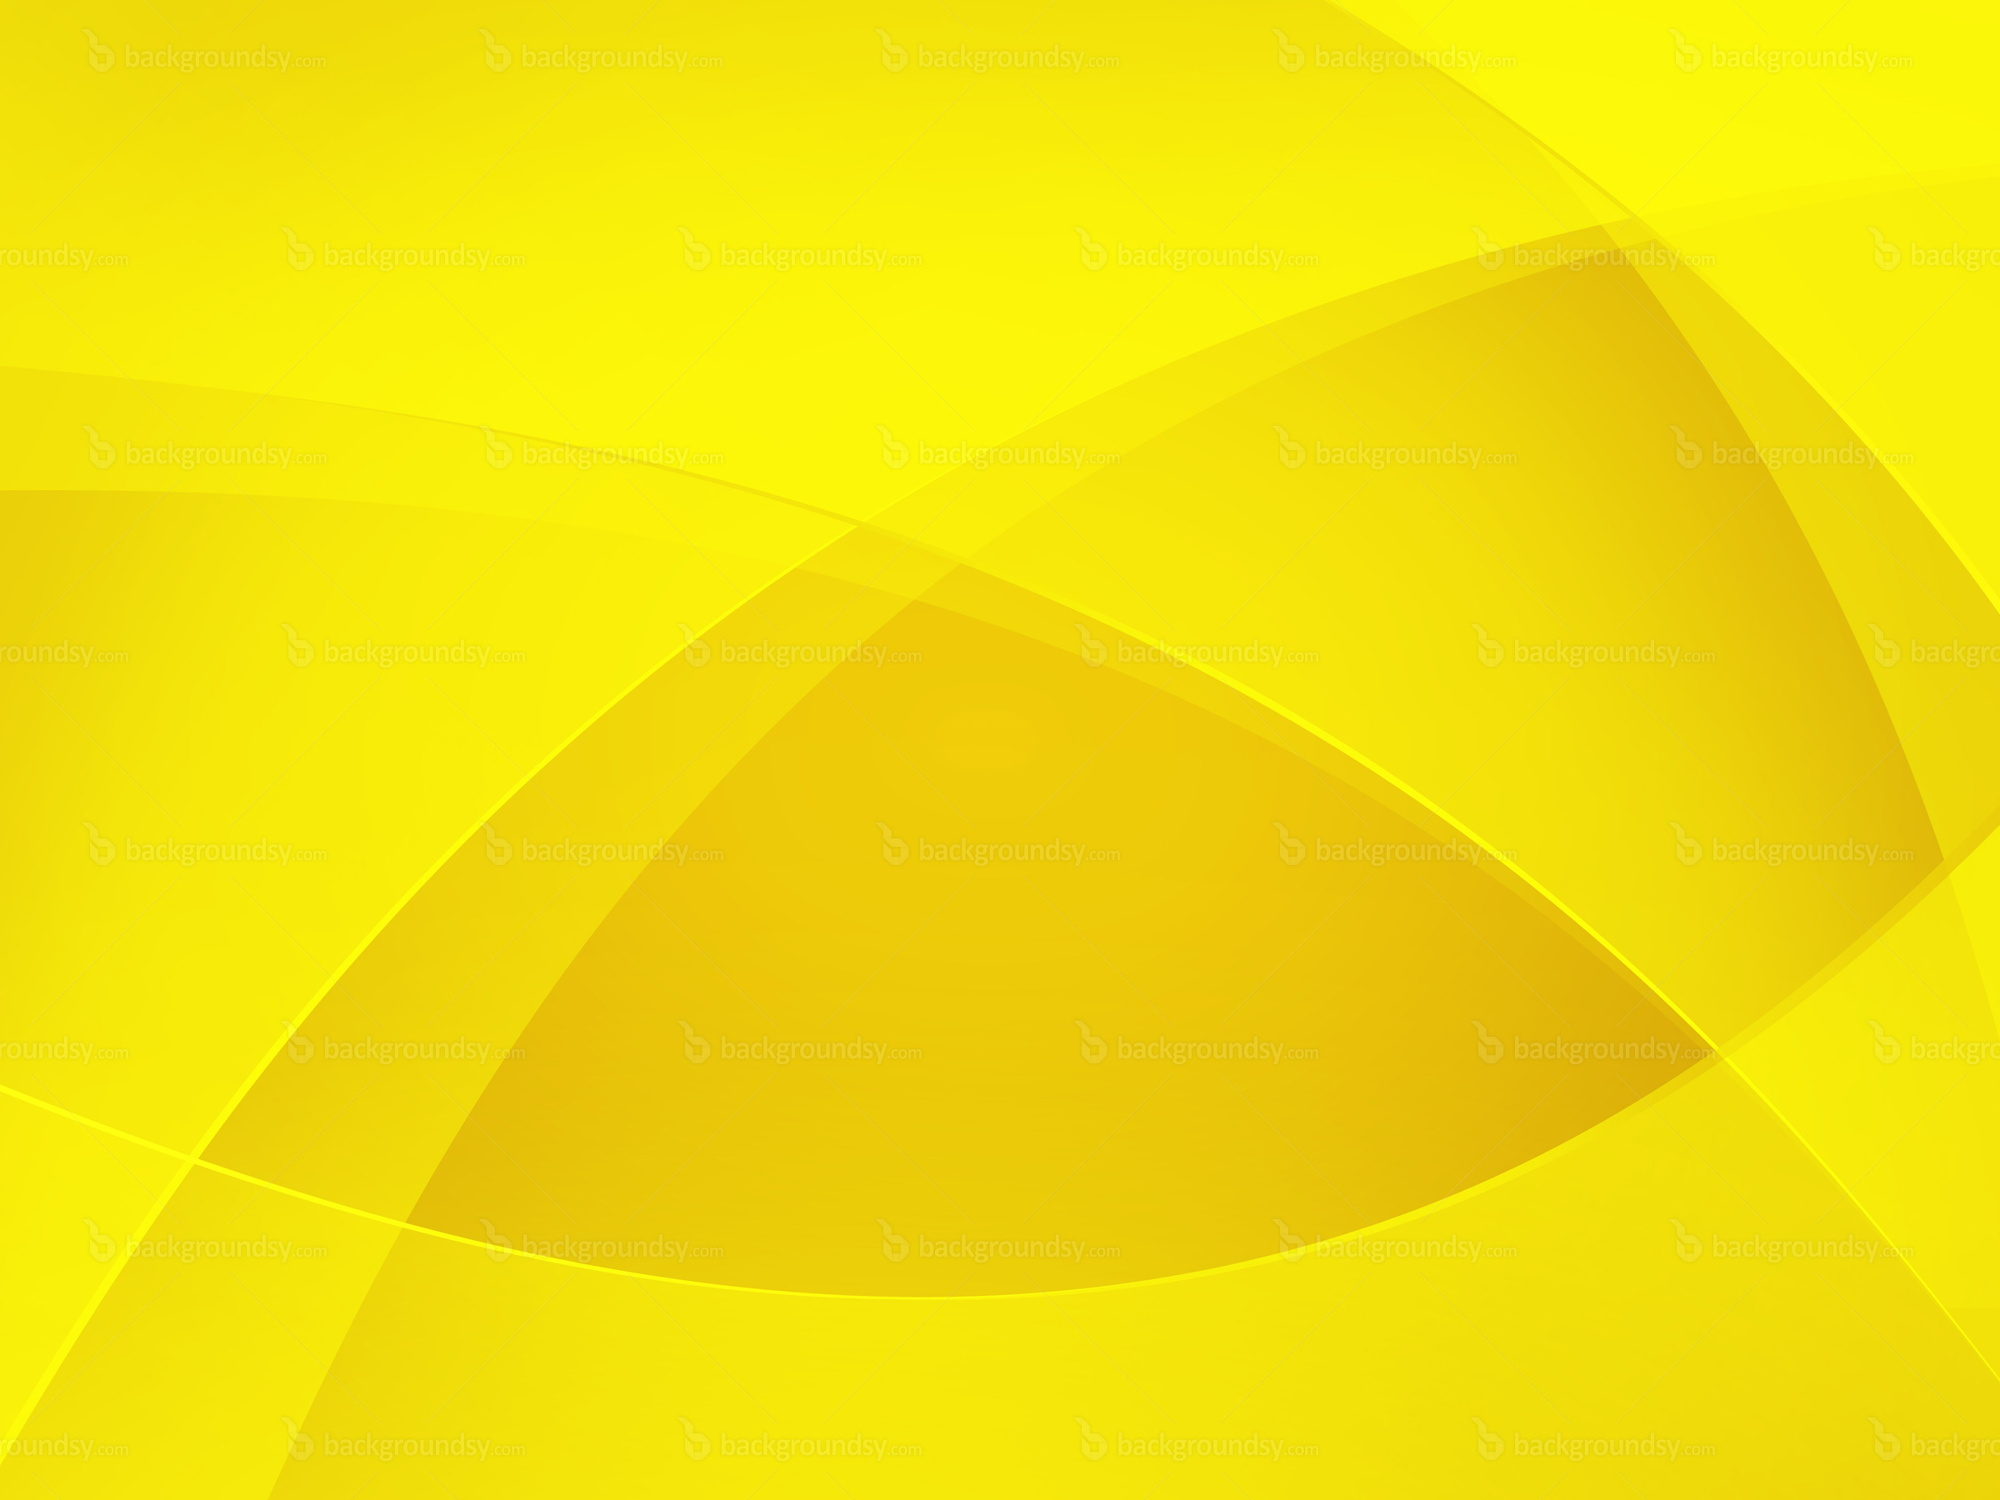 Yellow background design